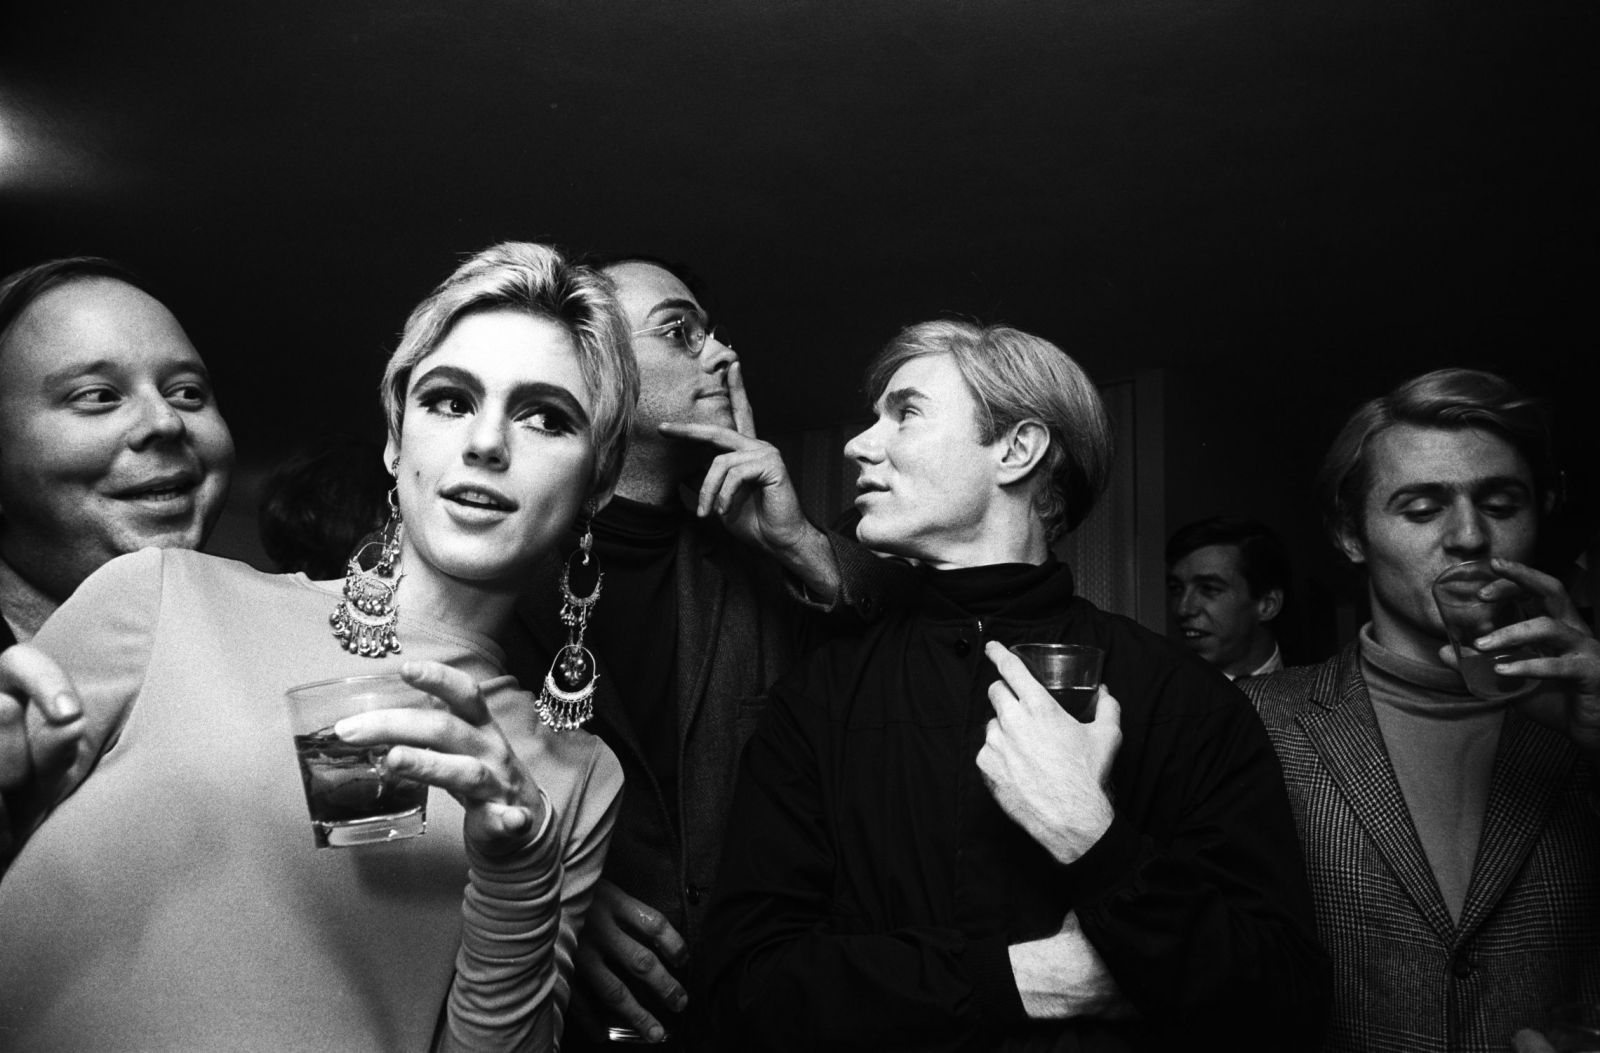 Edie Sedgwick and Andy Warhol, by Billy Name.